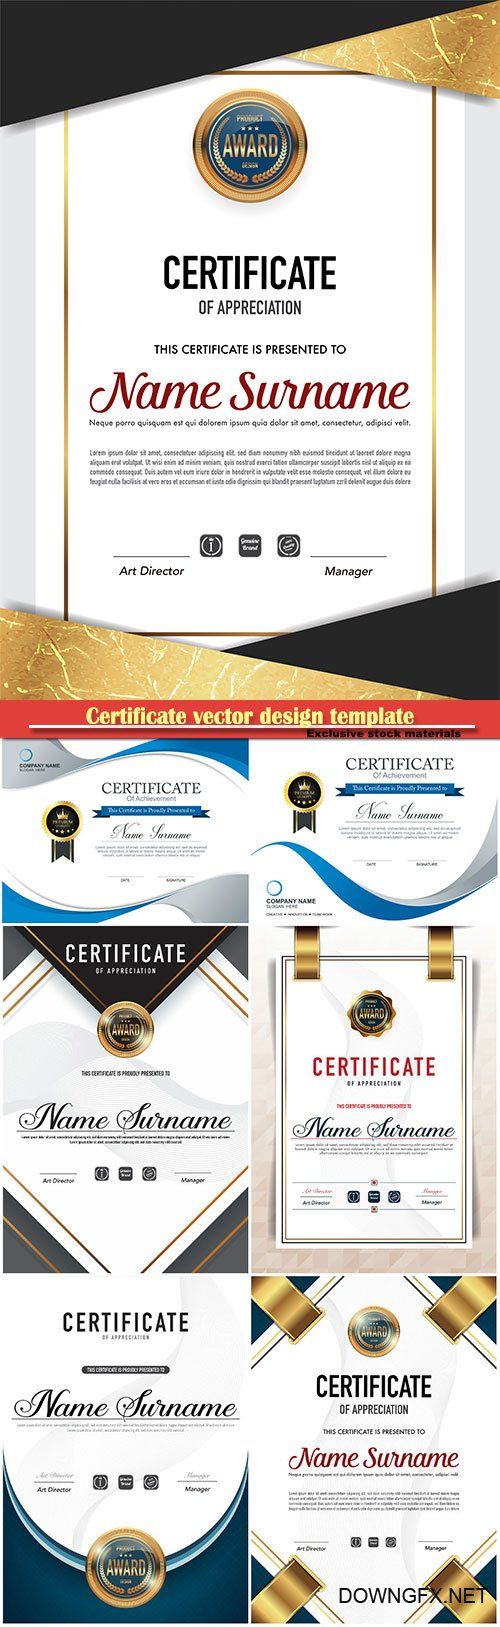 Certificate and vector diploma design template # 75